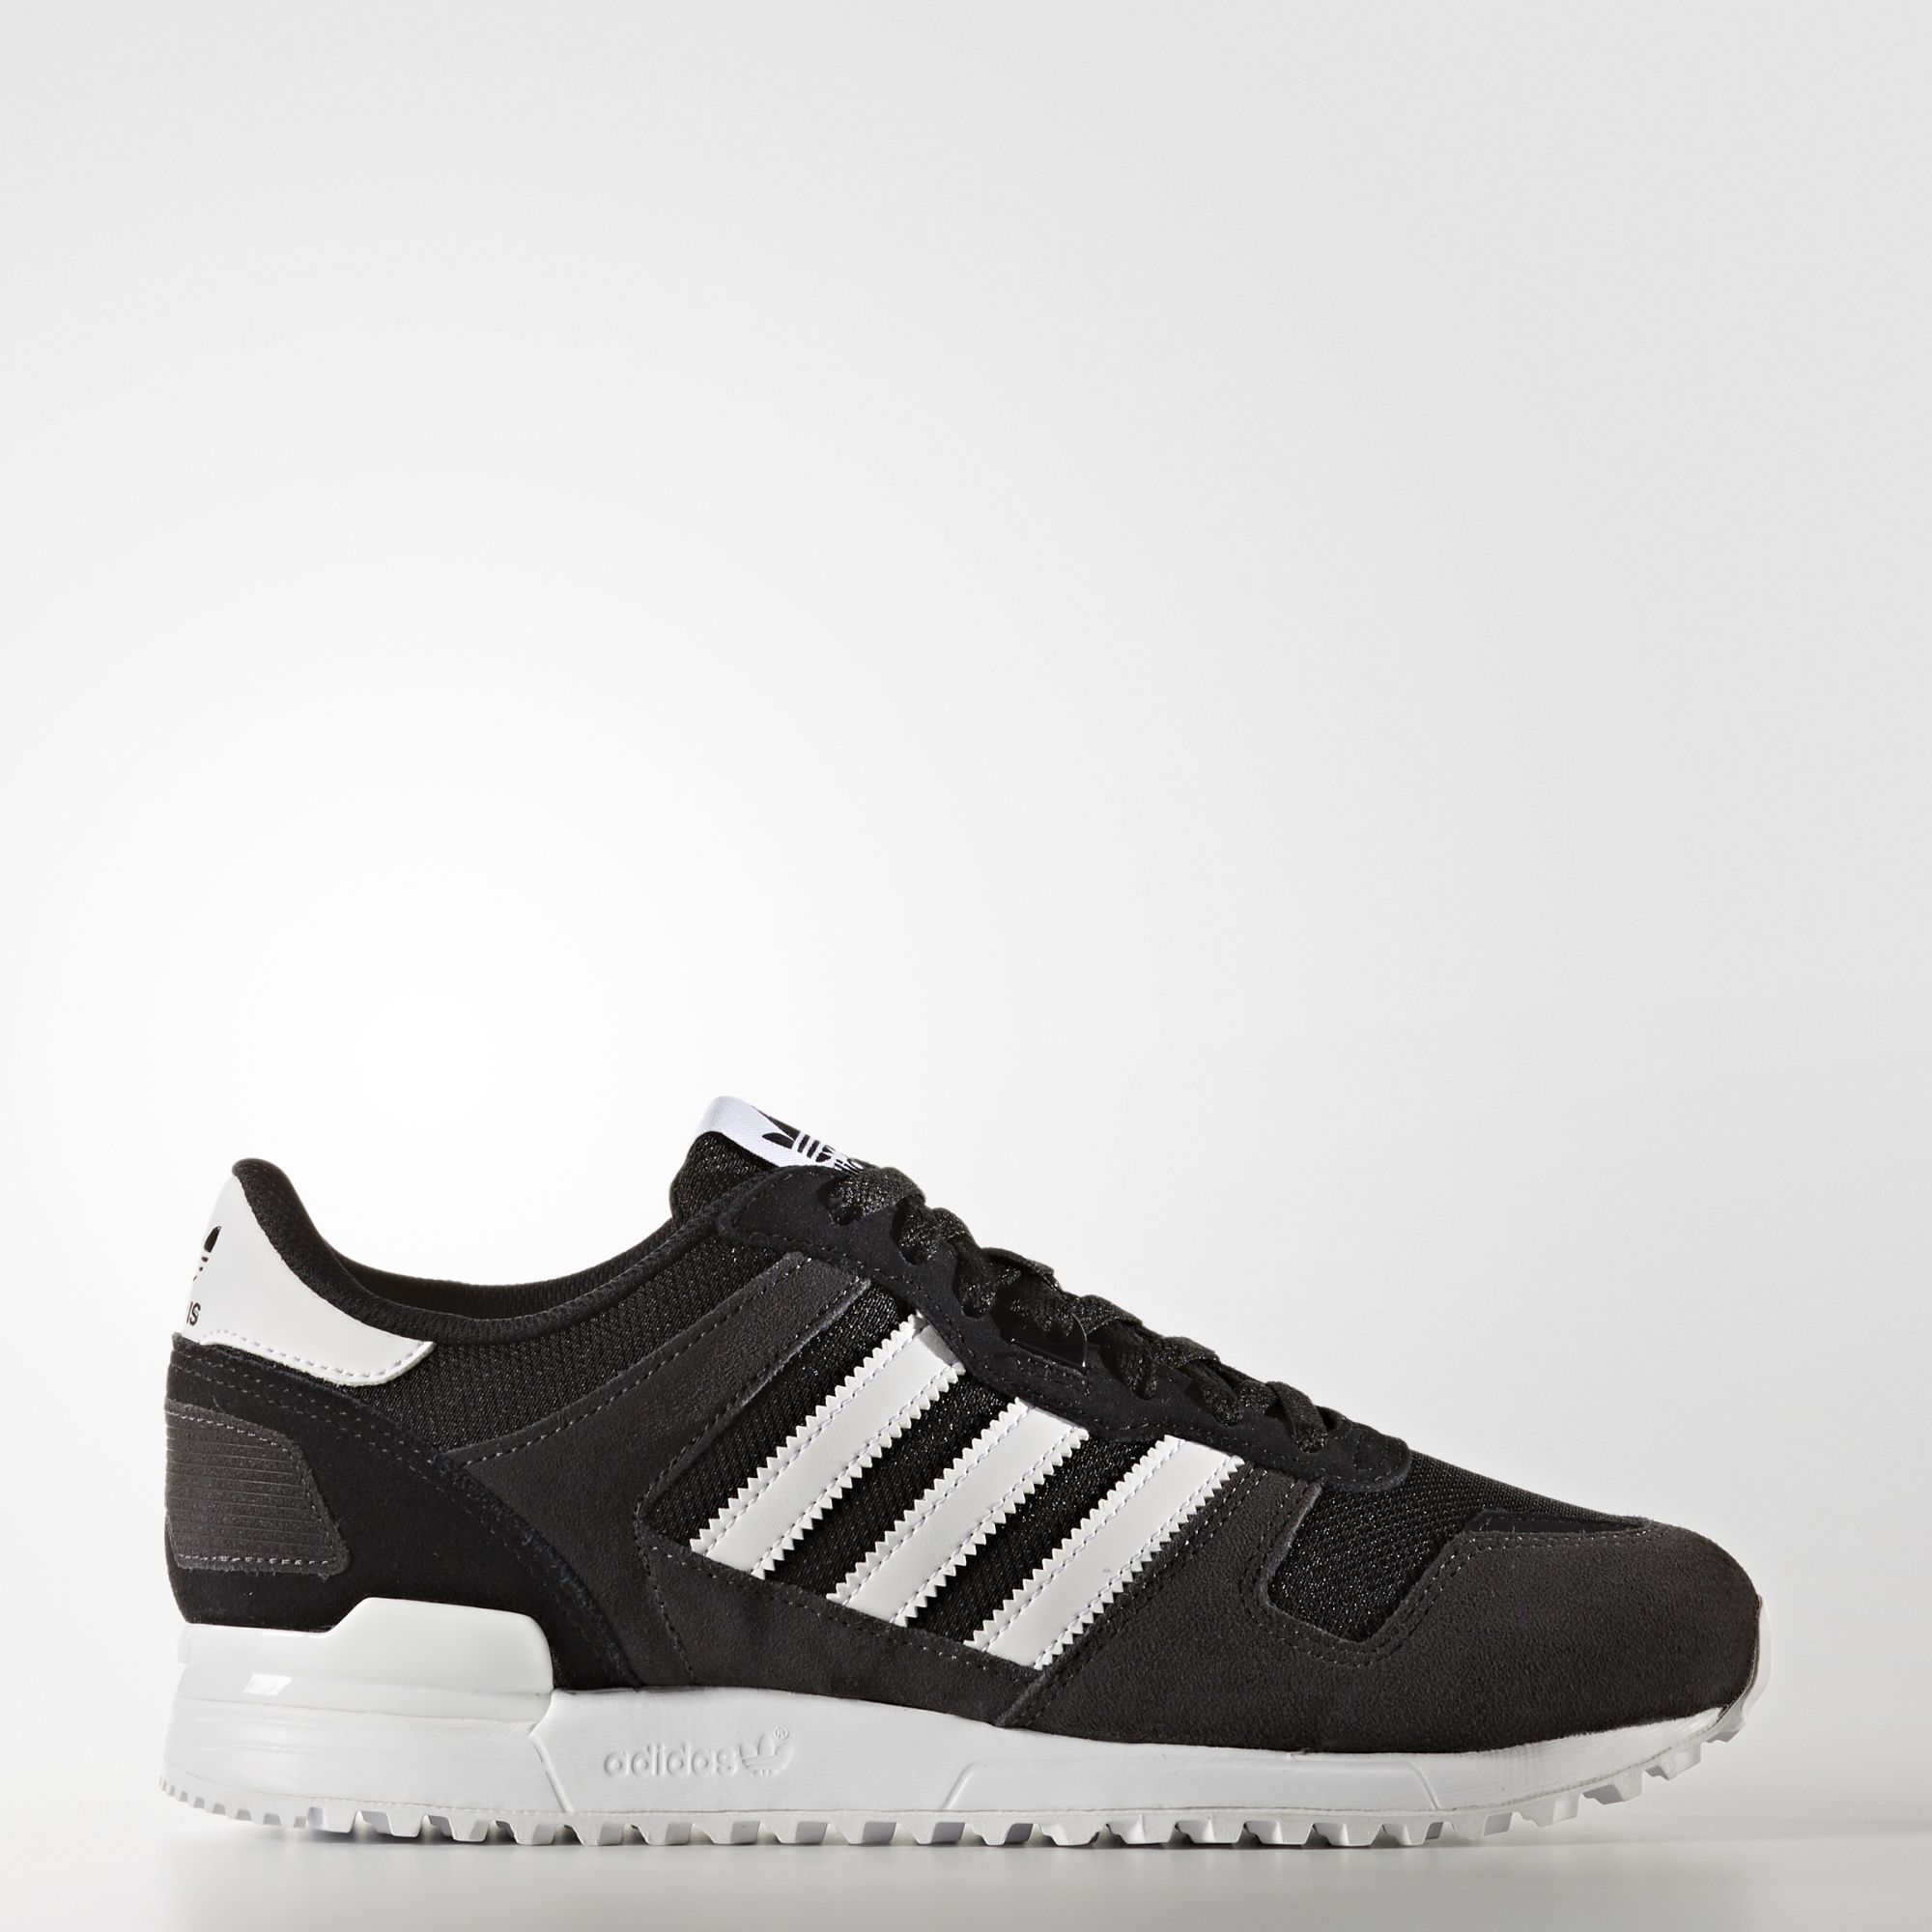 Inspired by the original ZX 700 distance runner of the '80s